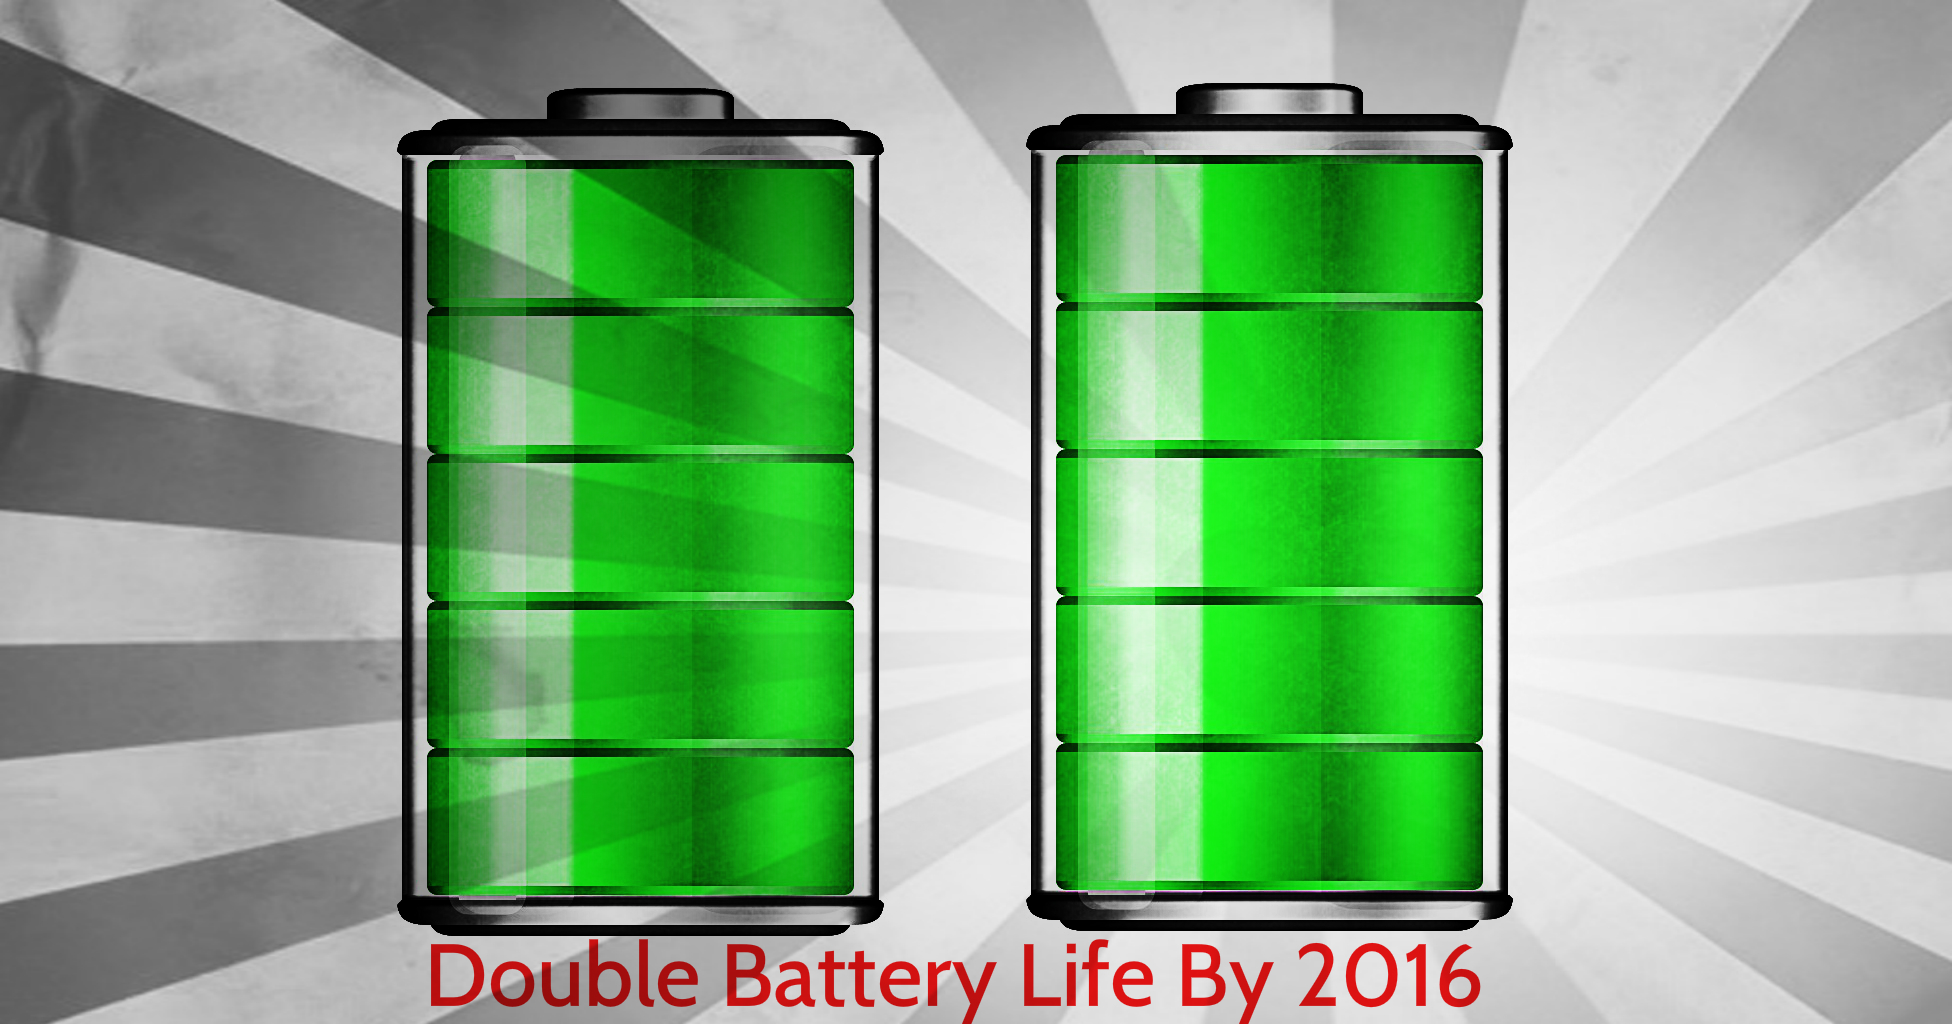 new battery technology 2016 double the running life of smartphones laptops inewtechnology. Black Bedroom Furniture Sets. Home Design Ideas